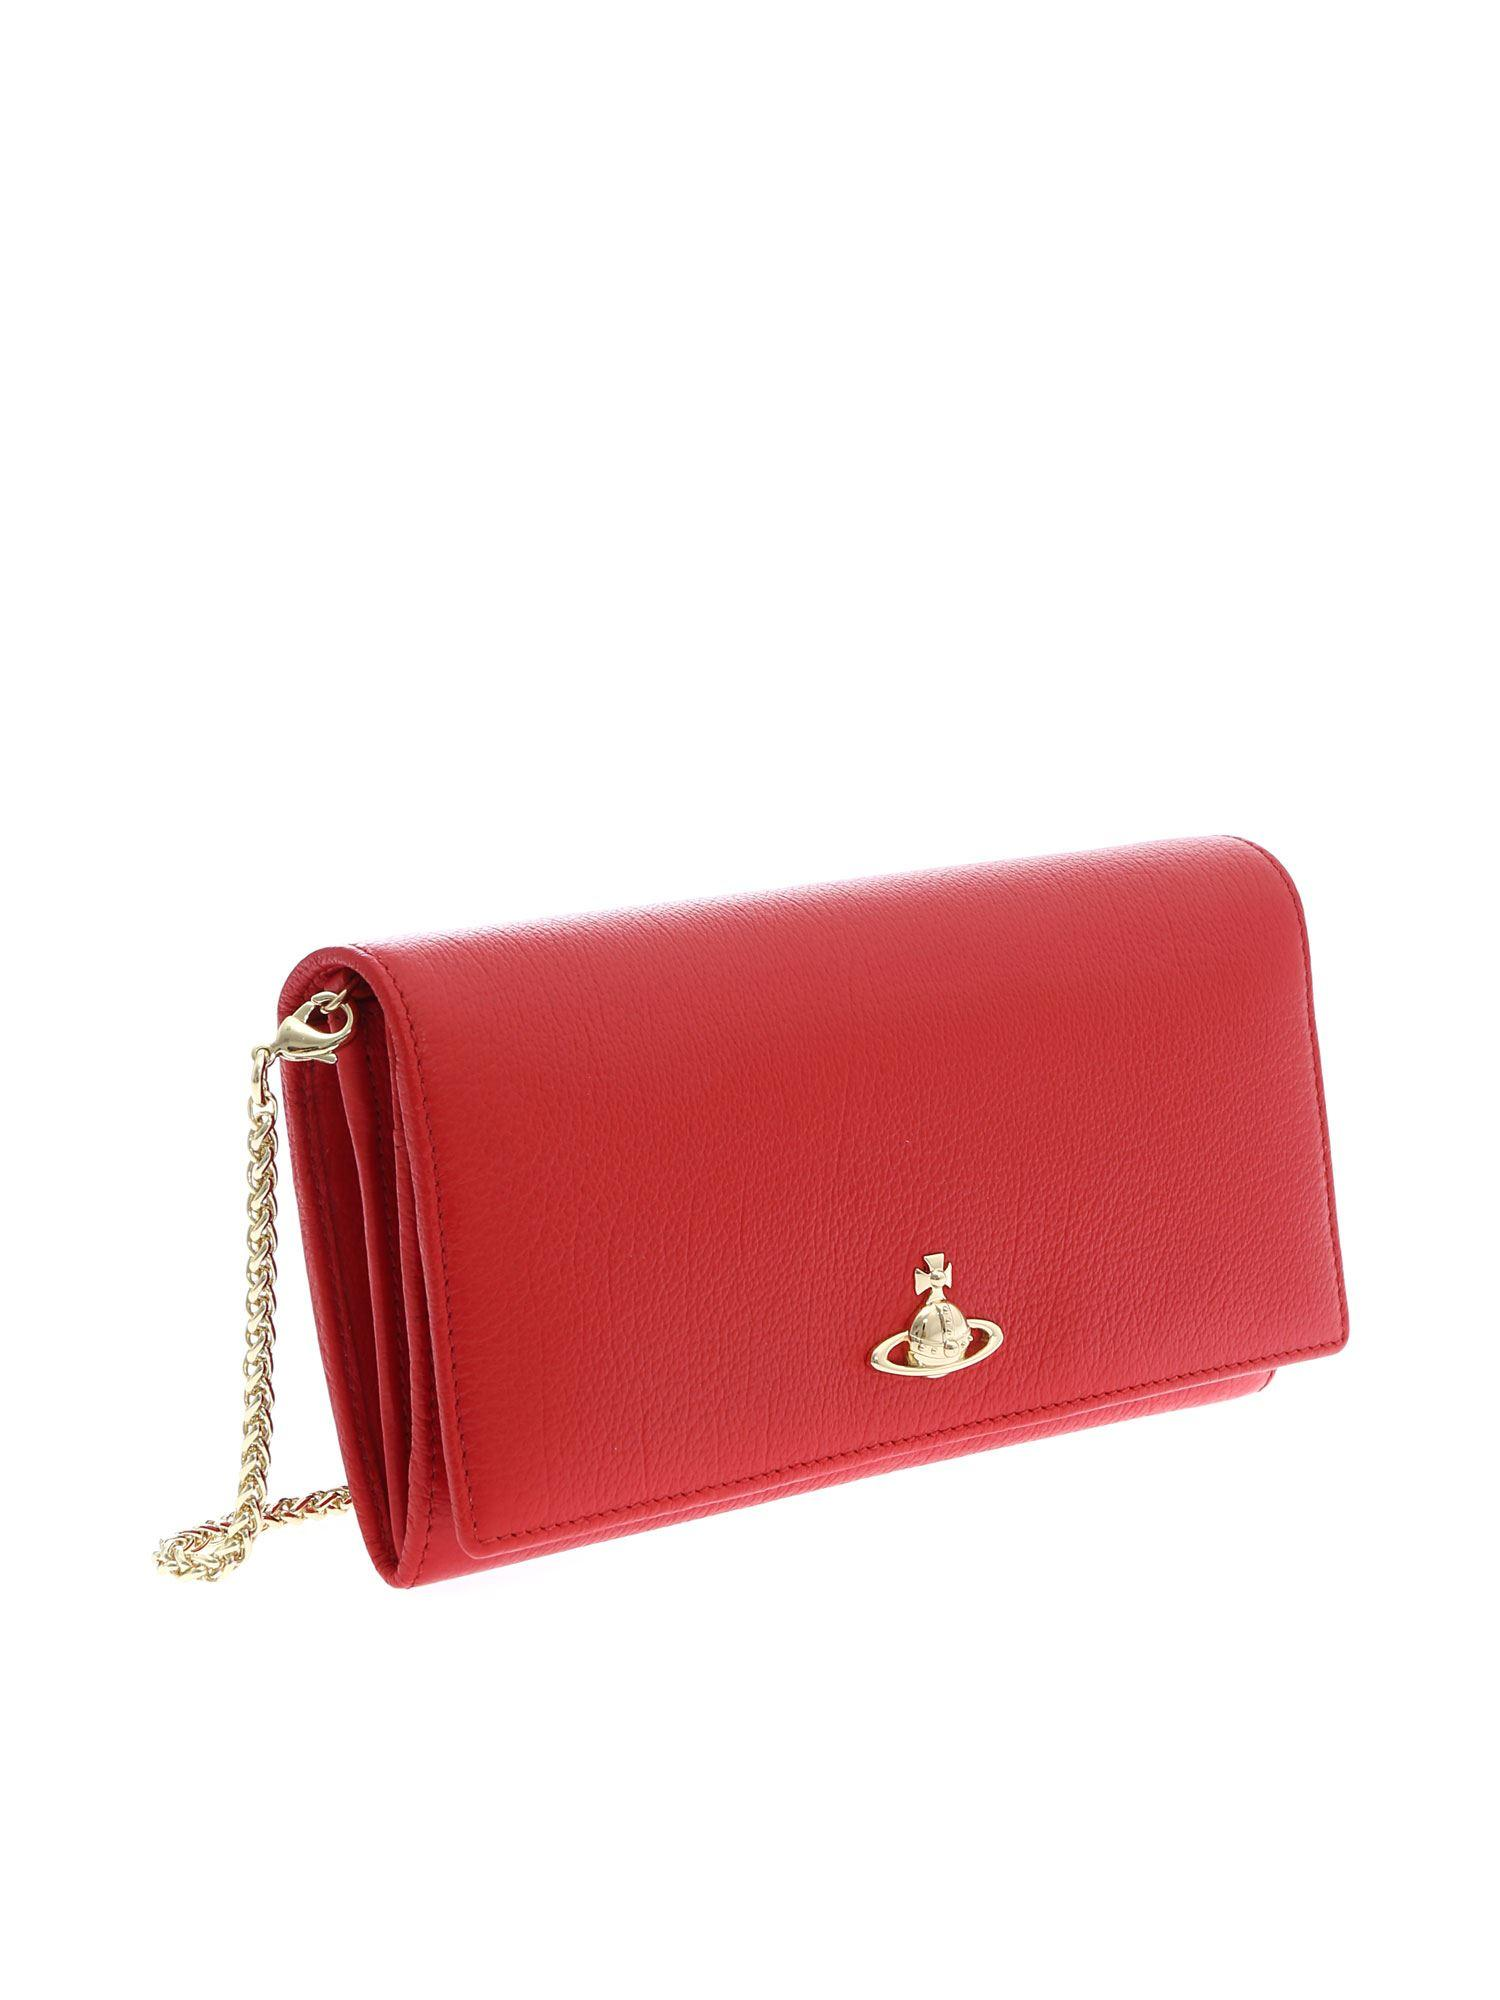 4b8d1f4925 Lyst - Vivienne Westwood Red Balmoral Continental Wallet With Logo in Red